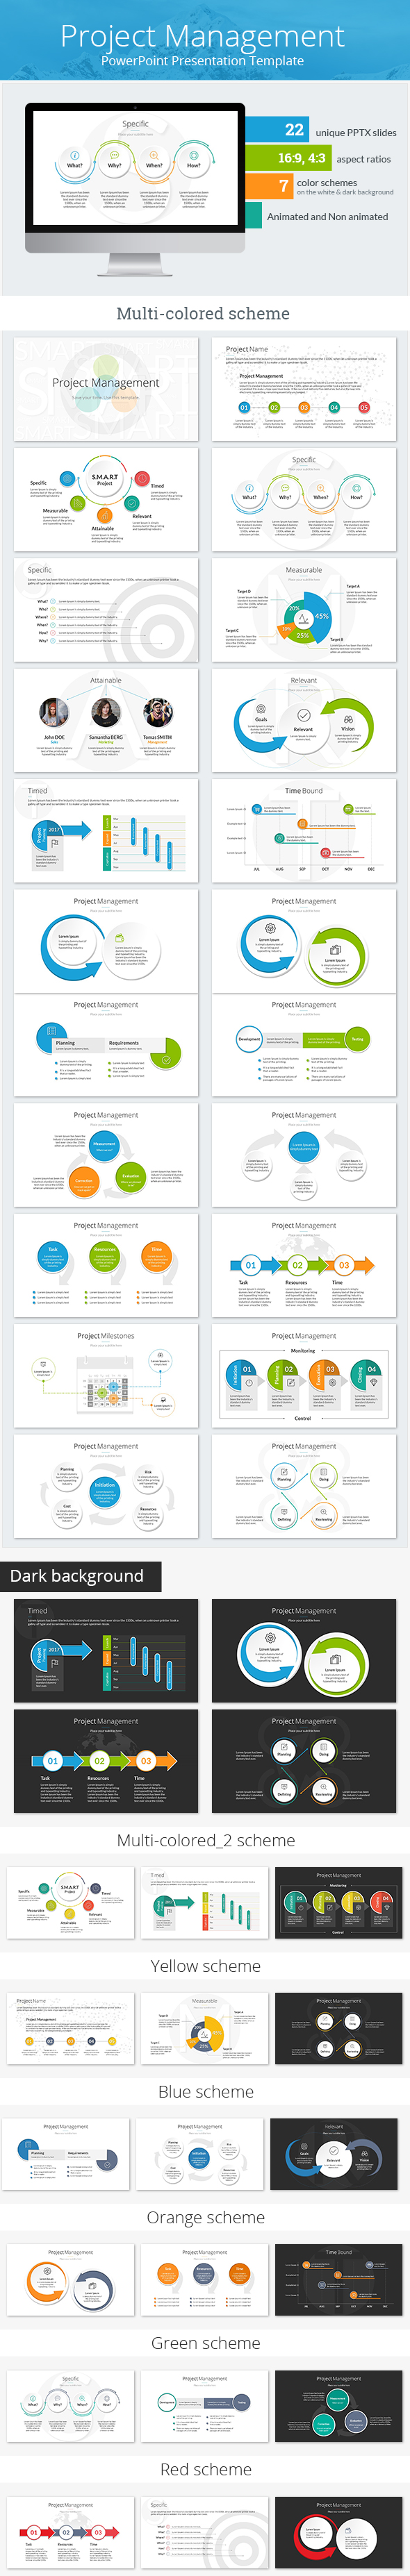 Project Management PowerPoint Presentation Template by SanaNik ...